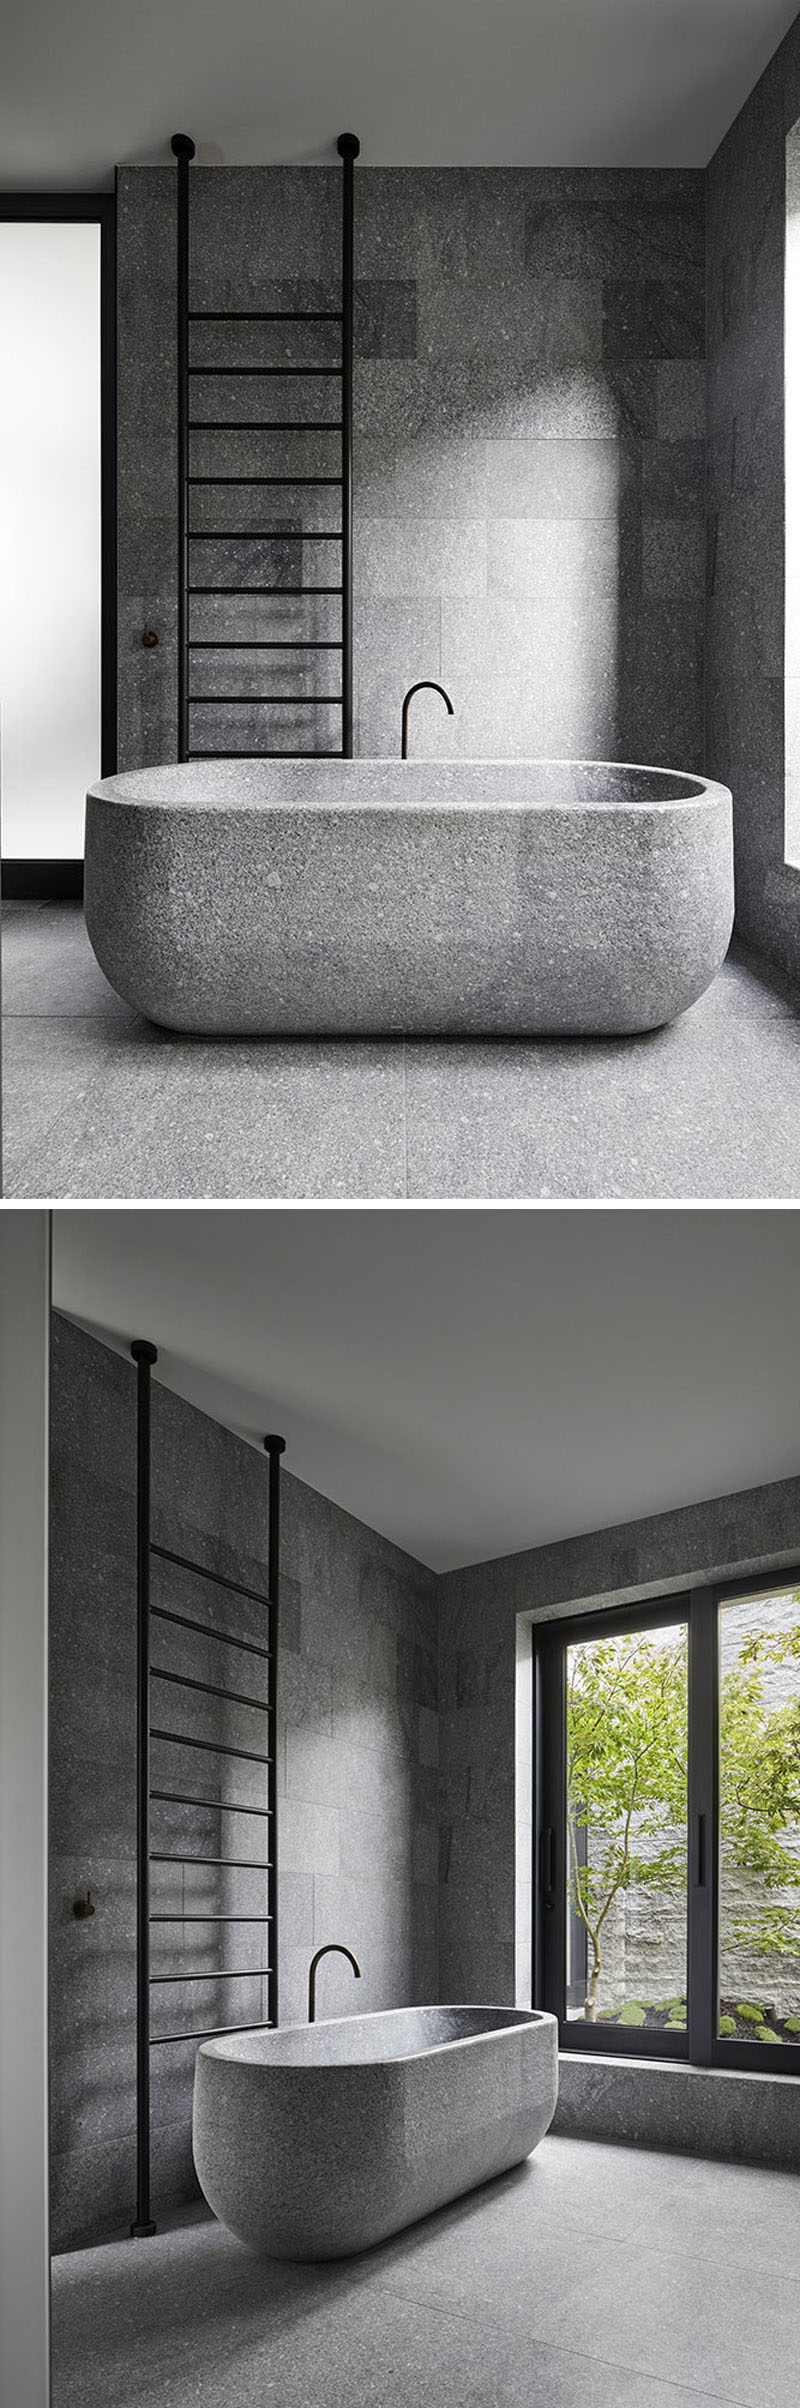 In this modern bathroom, a freestanding bathtub has been carved from a single granite block. Black accents like the faucet and towel ladder tie in with the window frames and create a contrast to the grey granite stone. #ModernBathroom #GraniteBathtub #GreyGranite